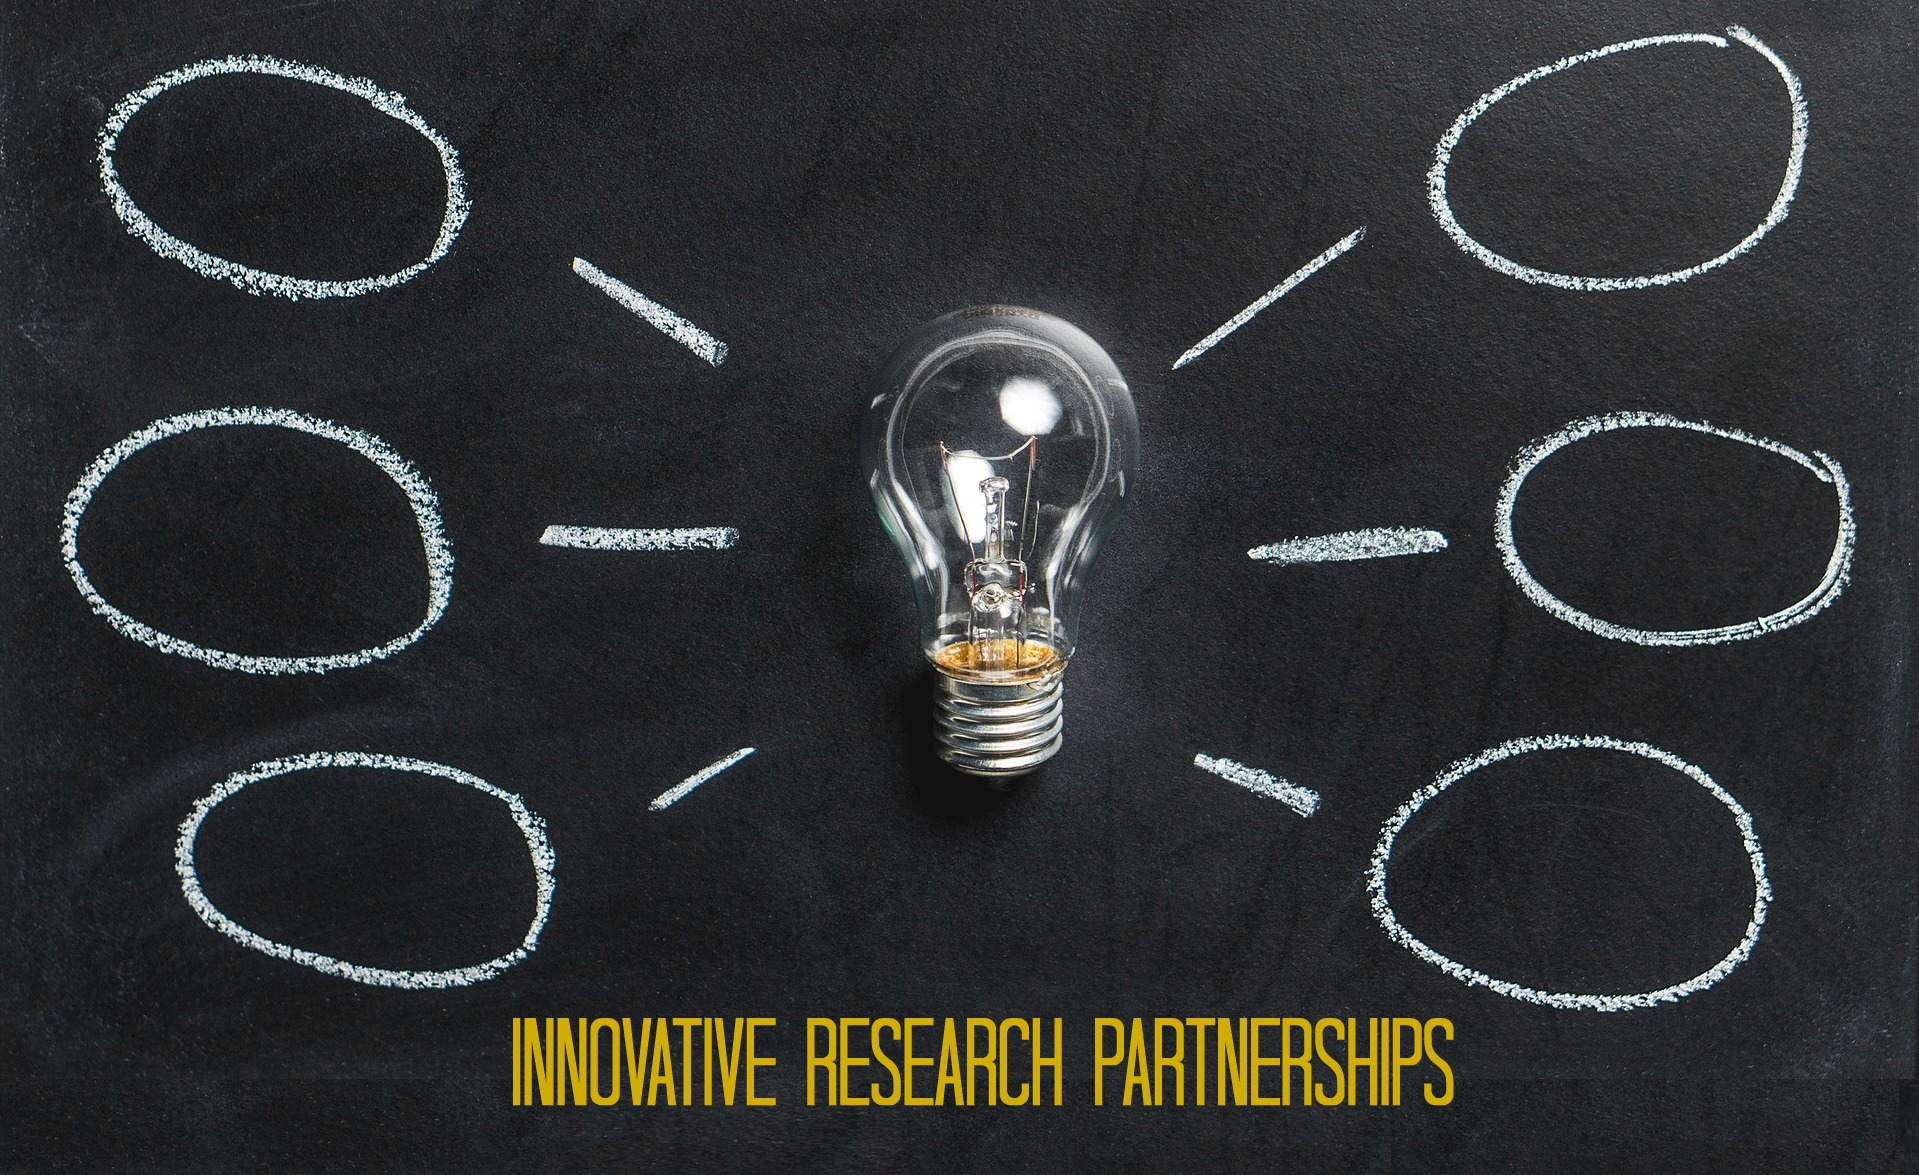 Innovative research partnership for improving the D.A.R.E. curriculum